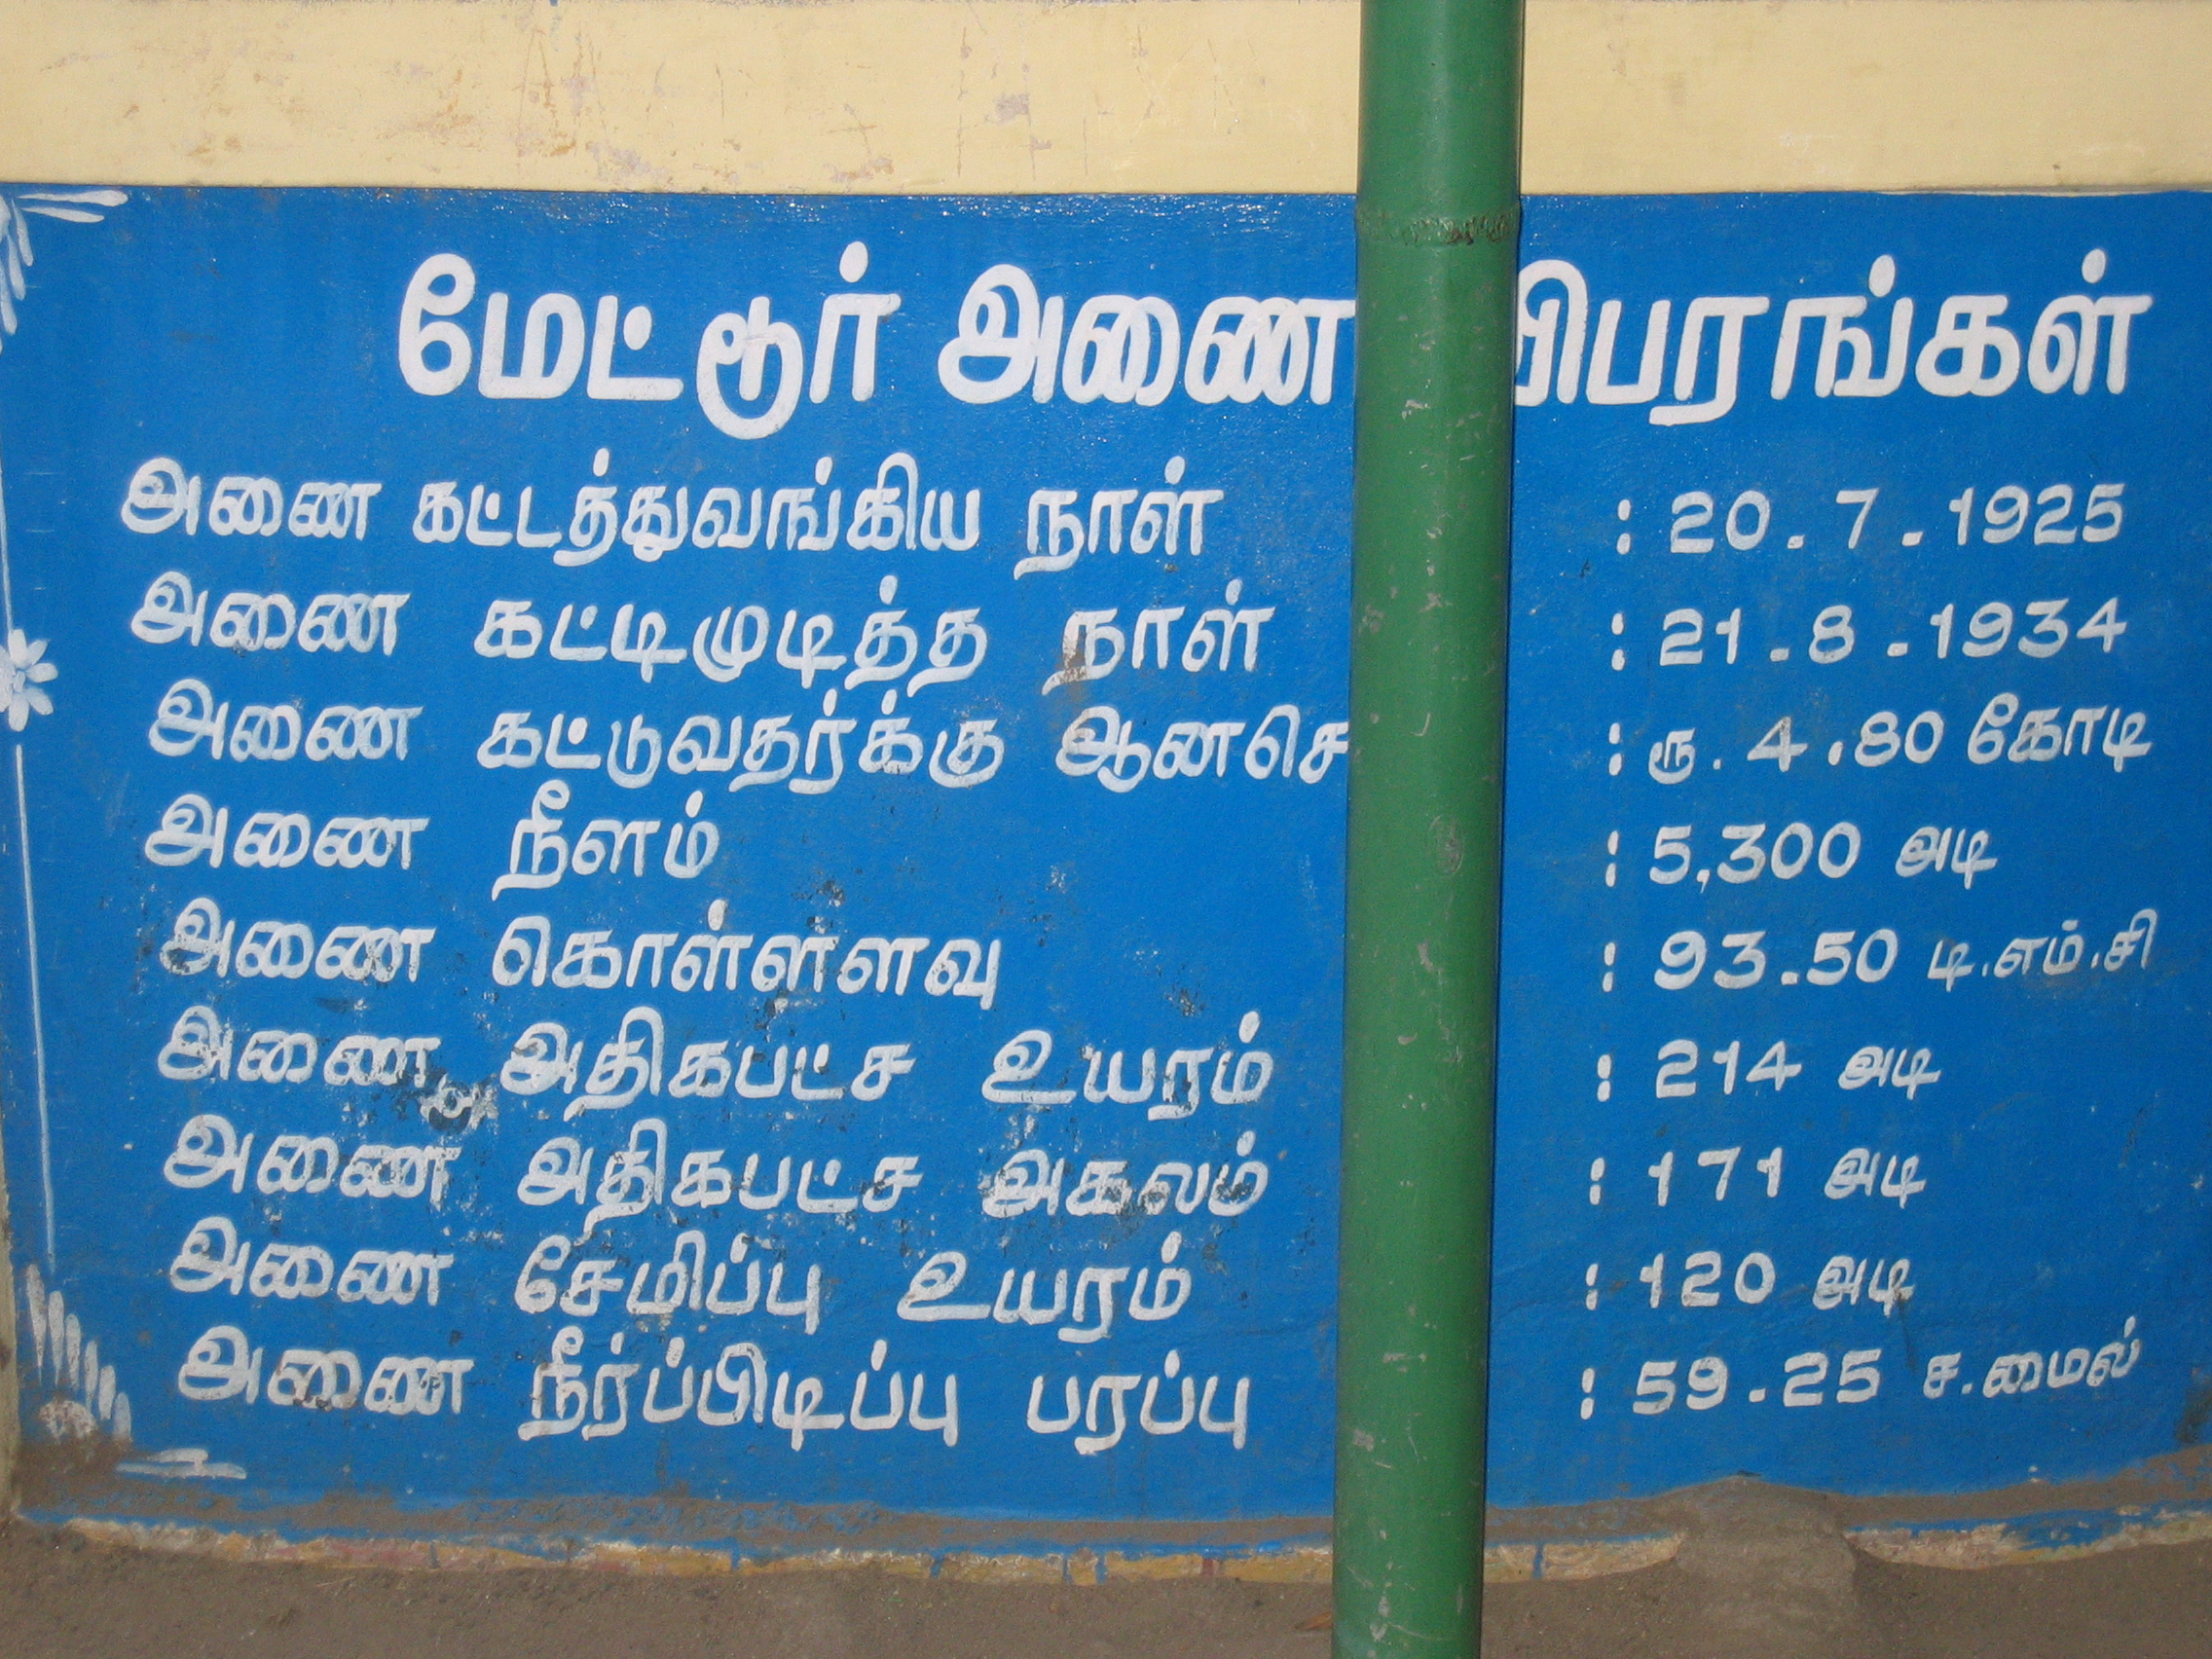 Mettur dam wikipedia details in tamil malvernweather Image collections